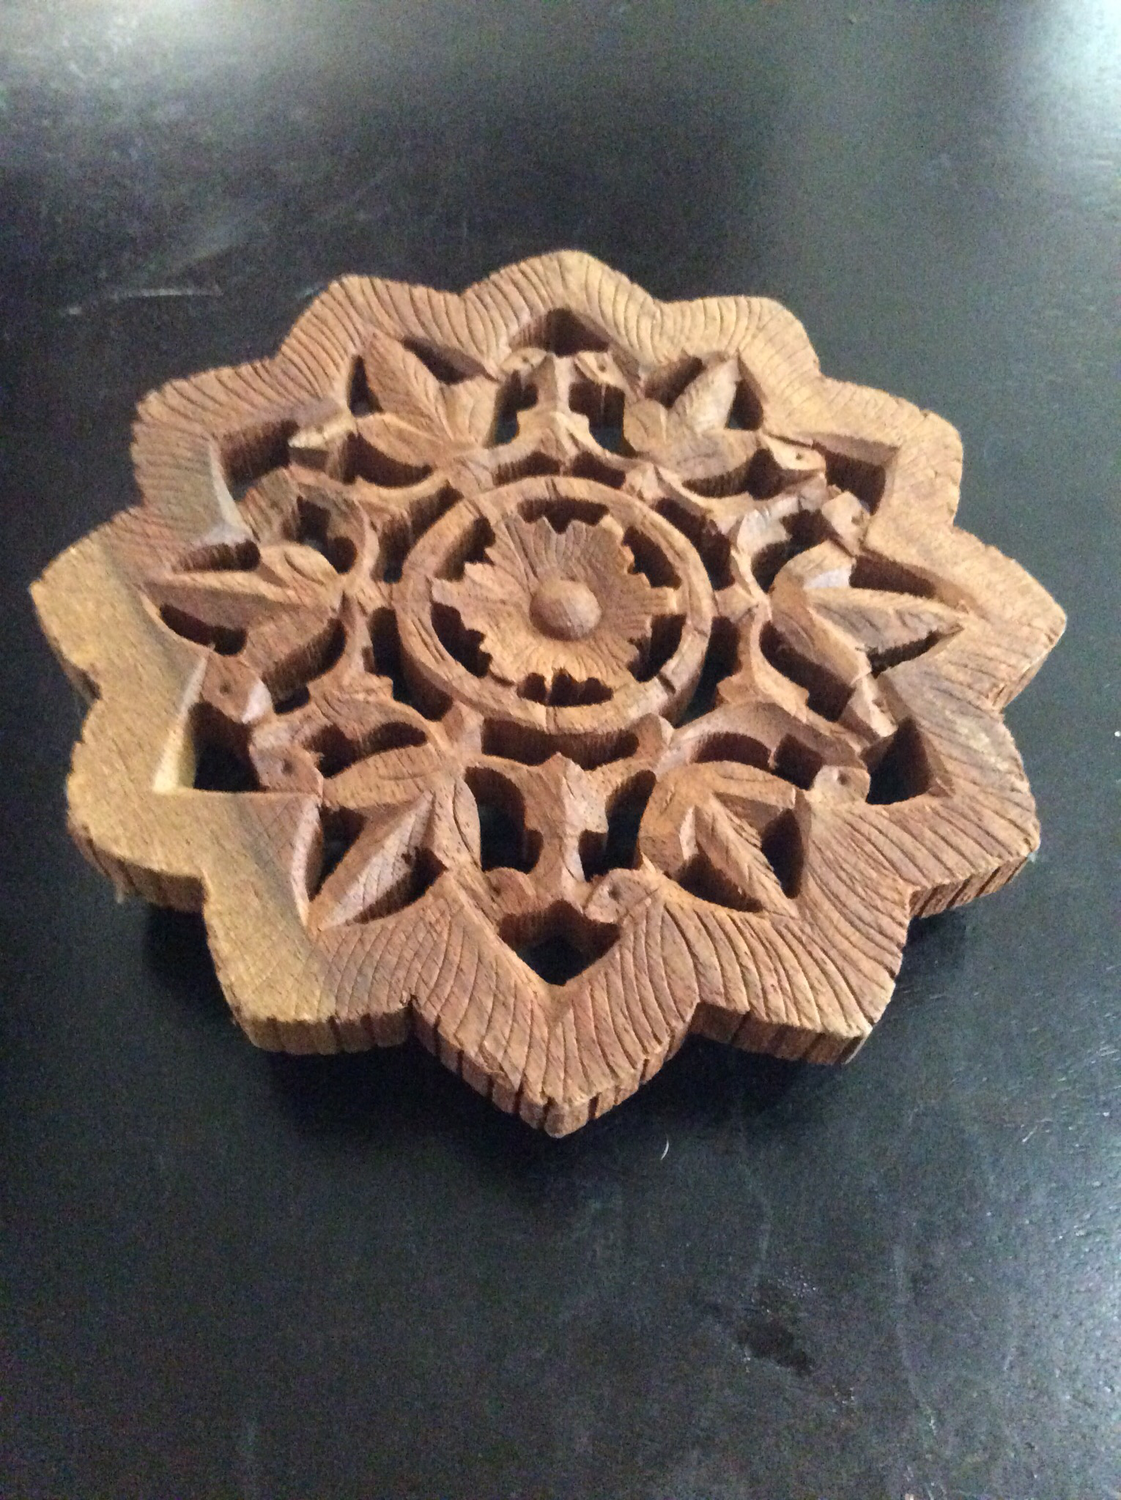 Wood trivet set Djinn tabernacle on when summonsing to cast thy wishes